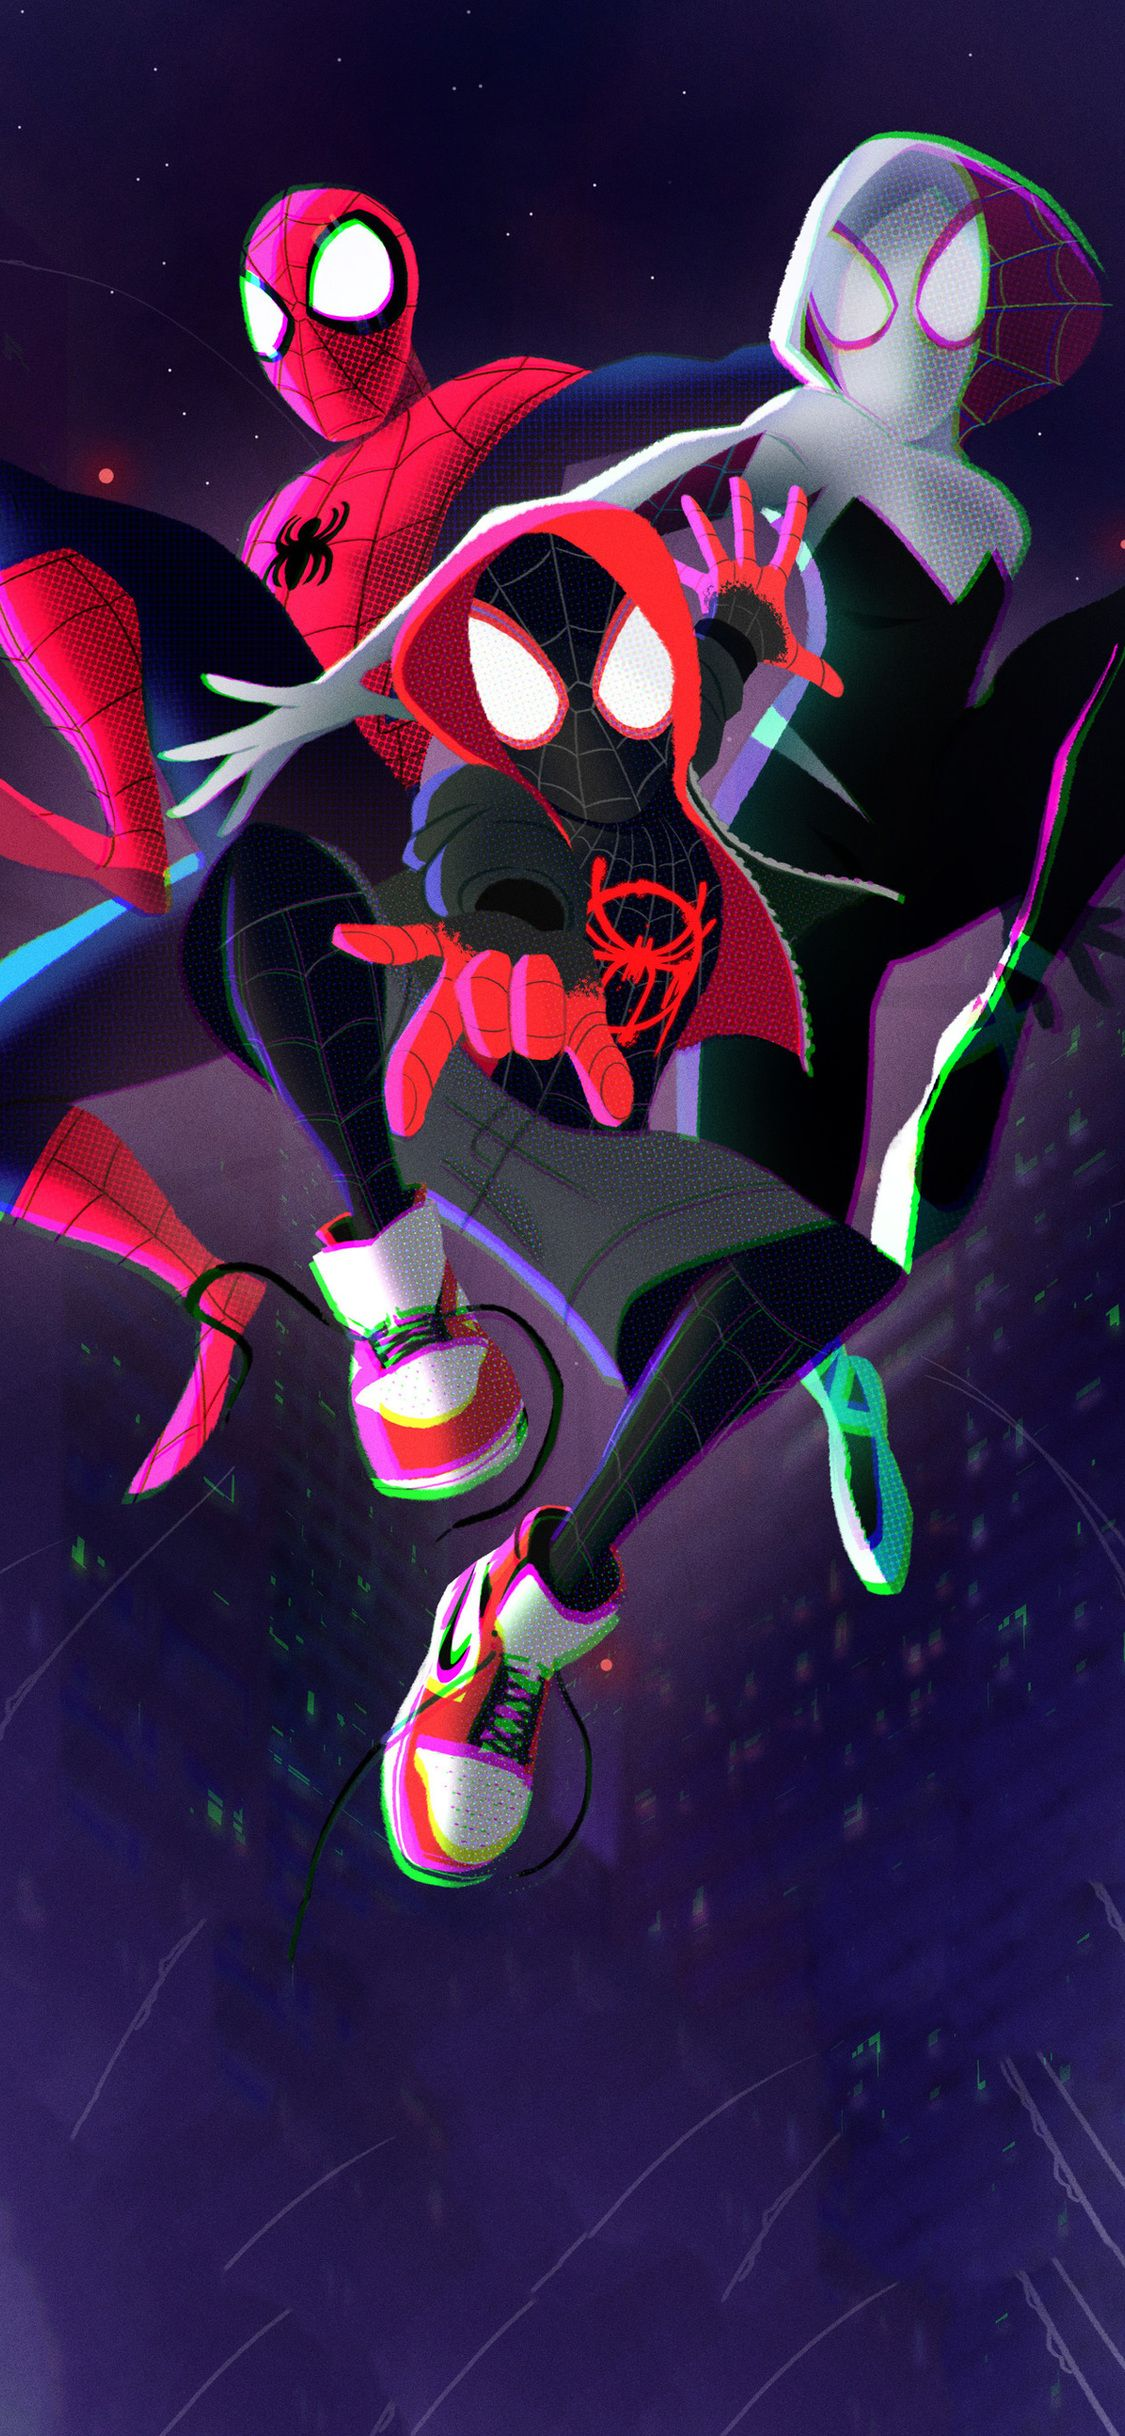 1125x2436 Spiderman Into The Spider Verse 2018 Art Iphone Xs Iphone 10 Iphone X Hd 4k Wallpapers Images Backgr Iphone Wallpaper Marvel Wallpaper Spider Verse